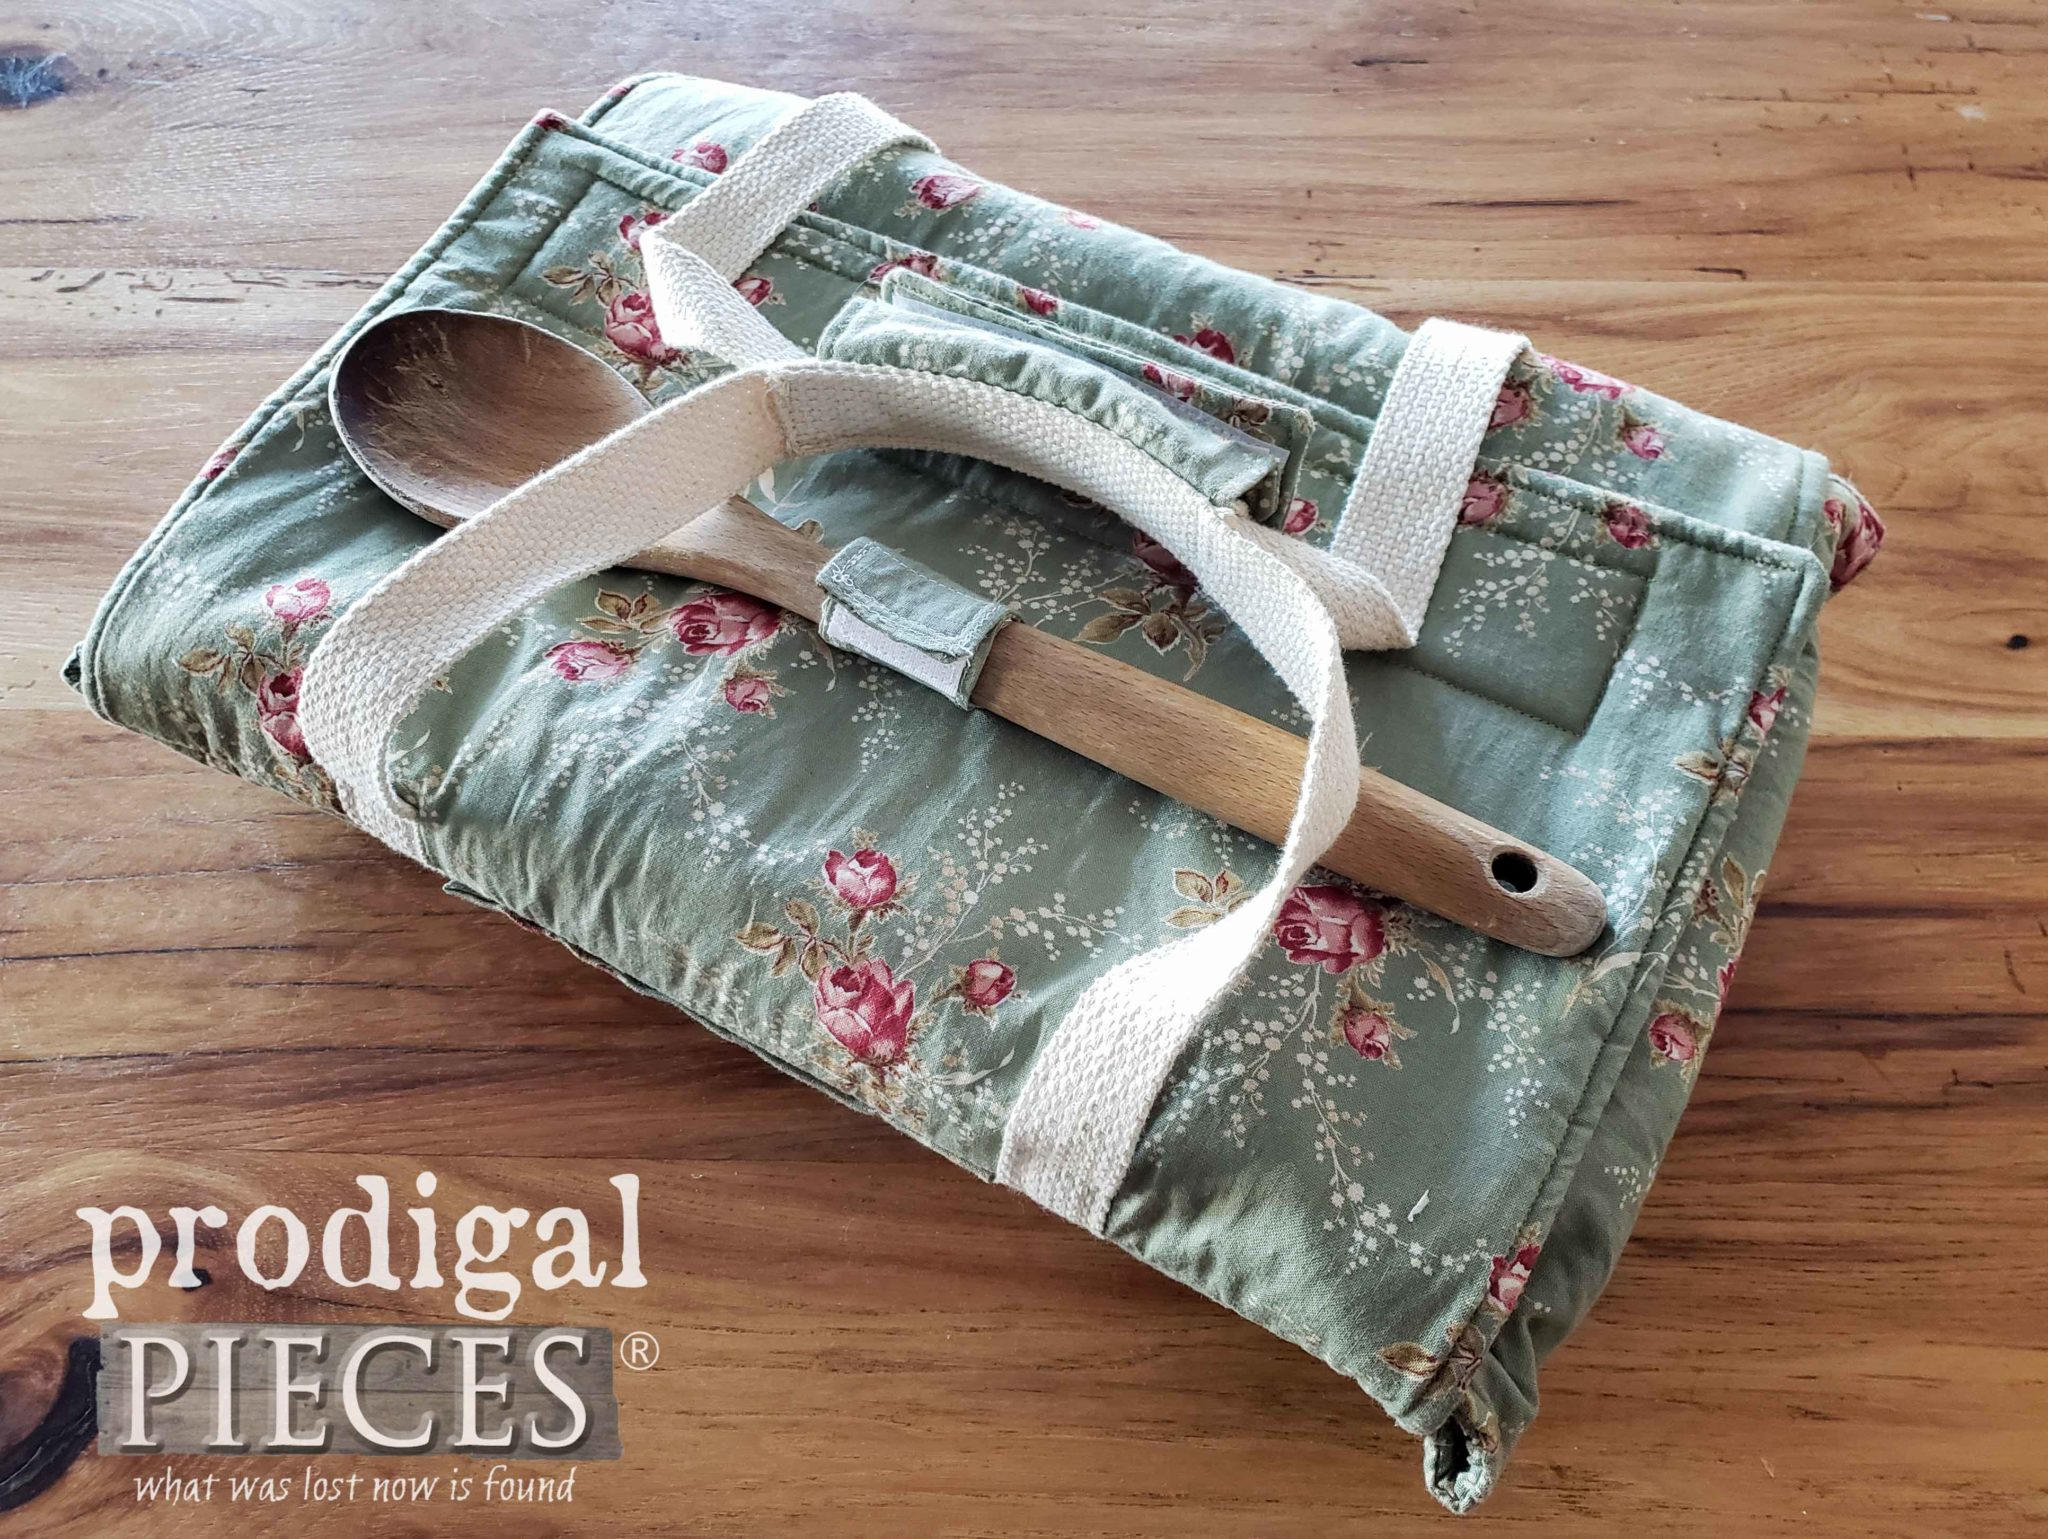 Handmade Insulated Casserole Carrier by Larissa of Prodigal Pieces | prodigalpieces.com #prodigalpieces #handmade #kitchen #home